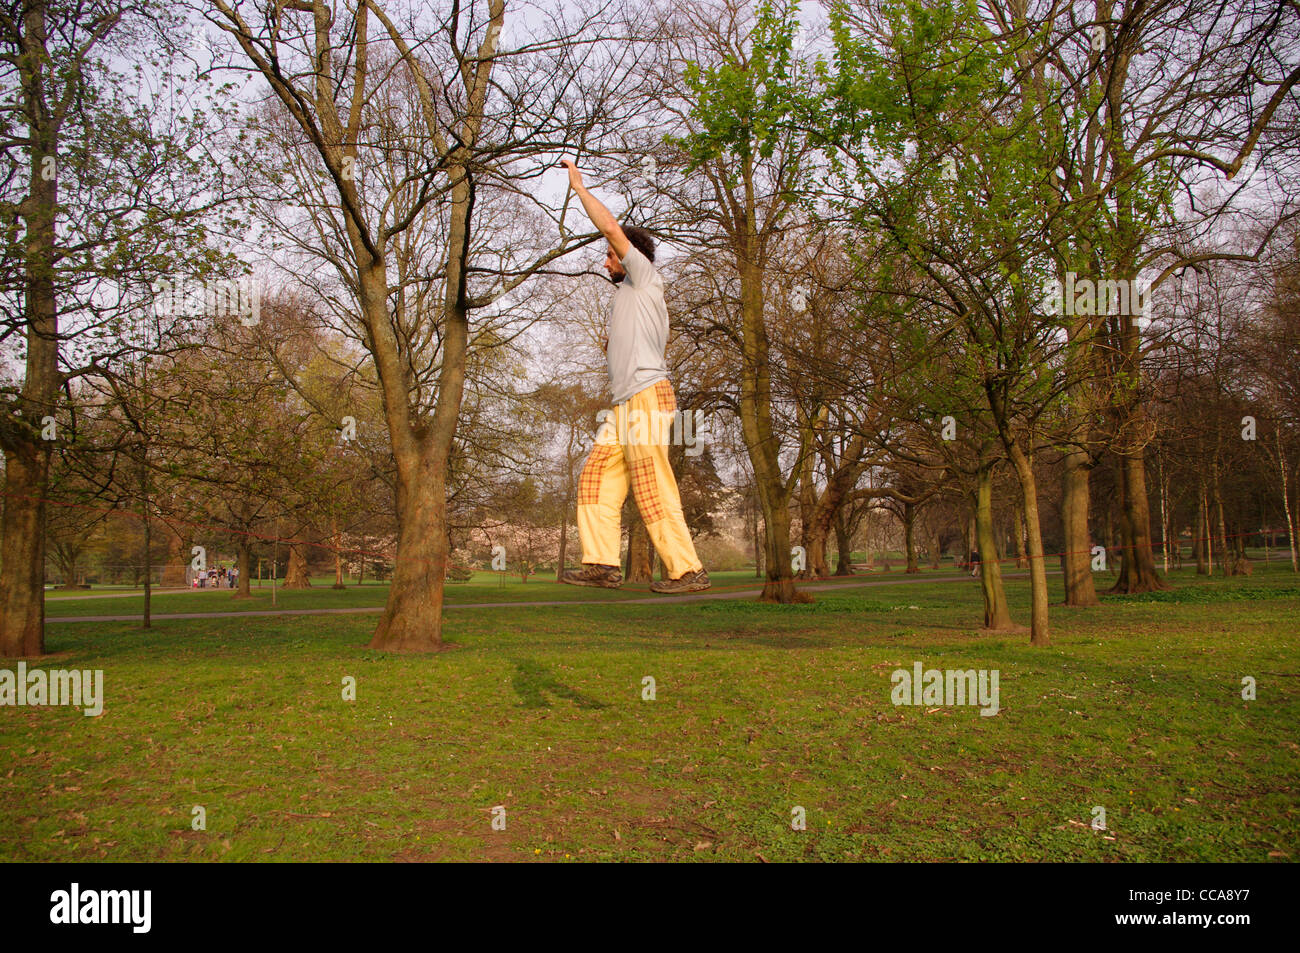 A man Slack Lining in Bute Park Cardiff - Stock Image